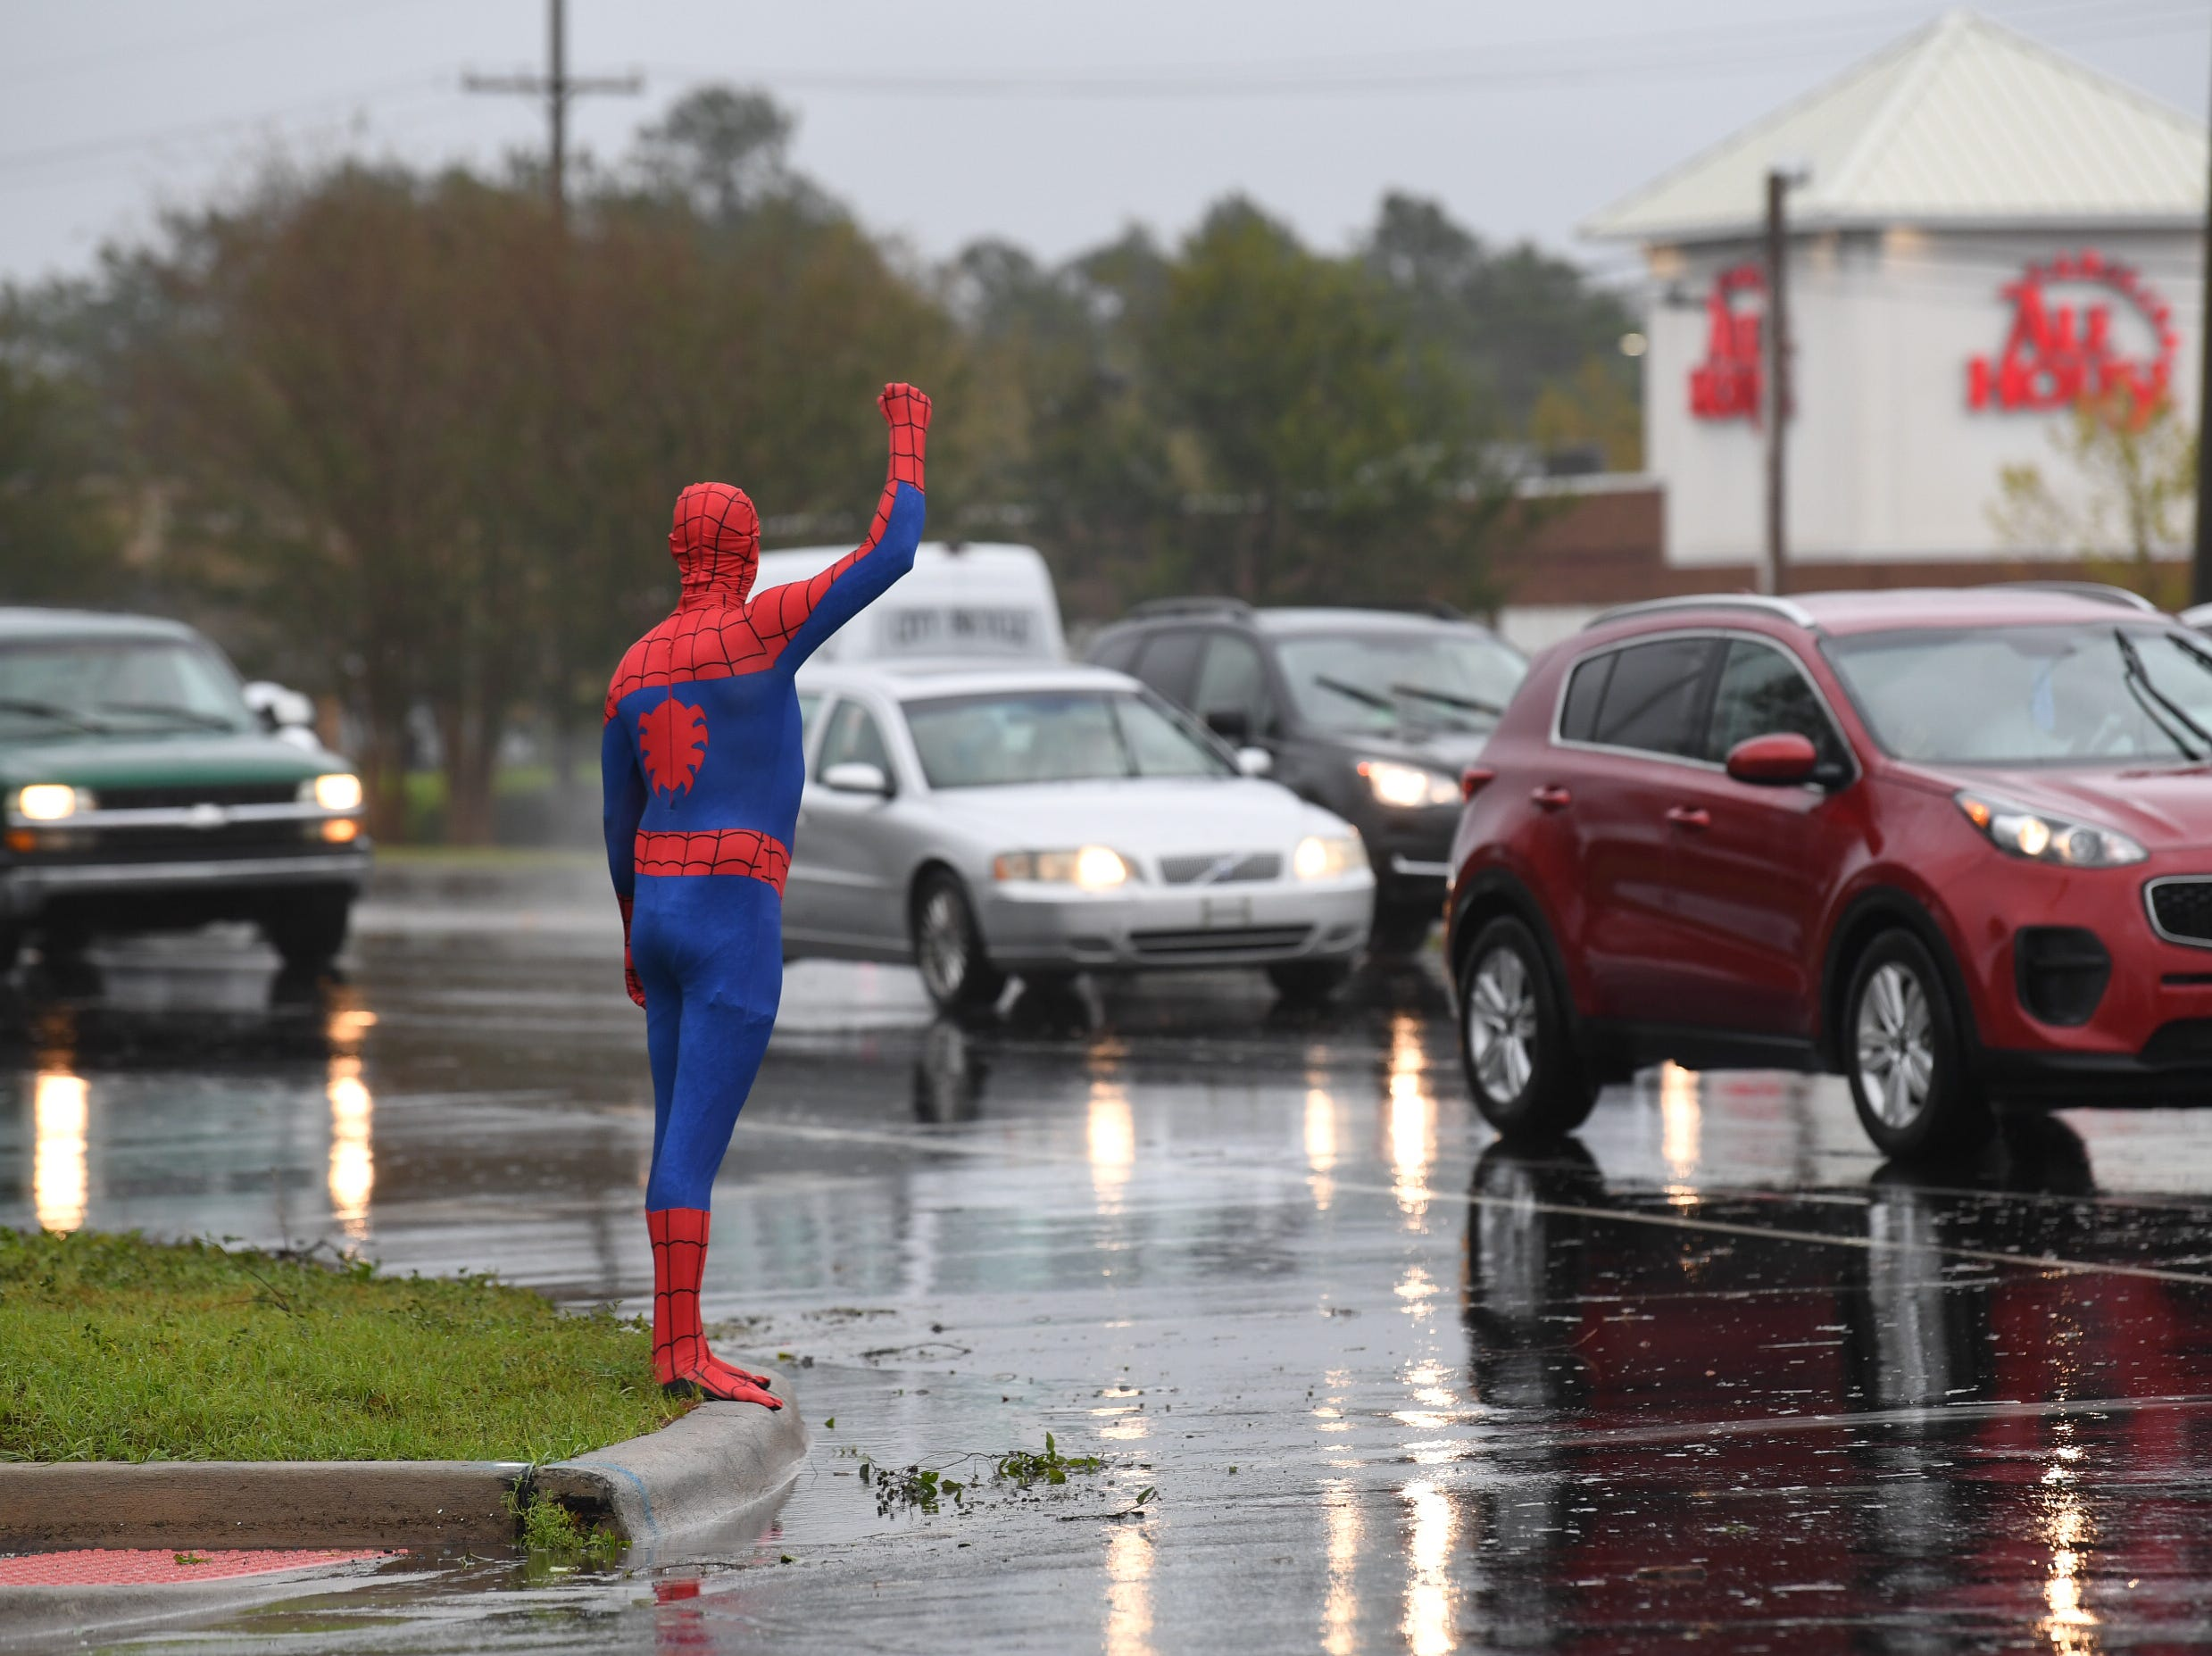 Rodney Foley of Wilmington in Spider-Man suit trying to cheer people up in Wilmington on Saturday, Sept. 15, 2018.